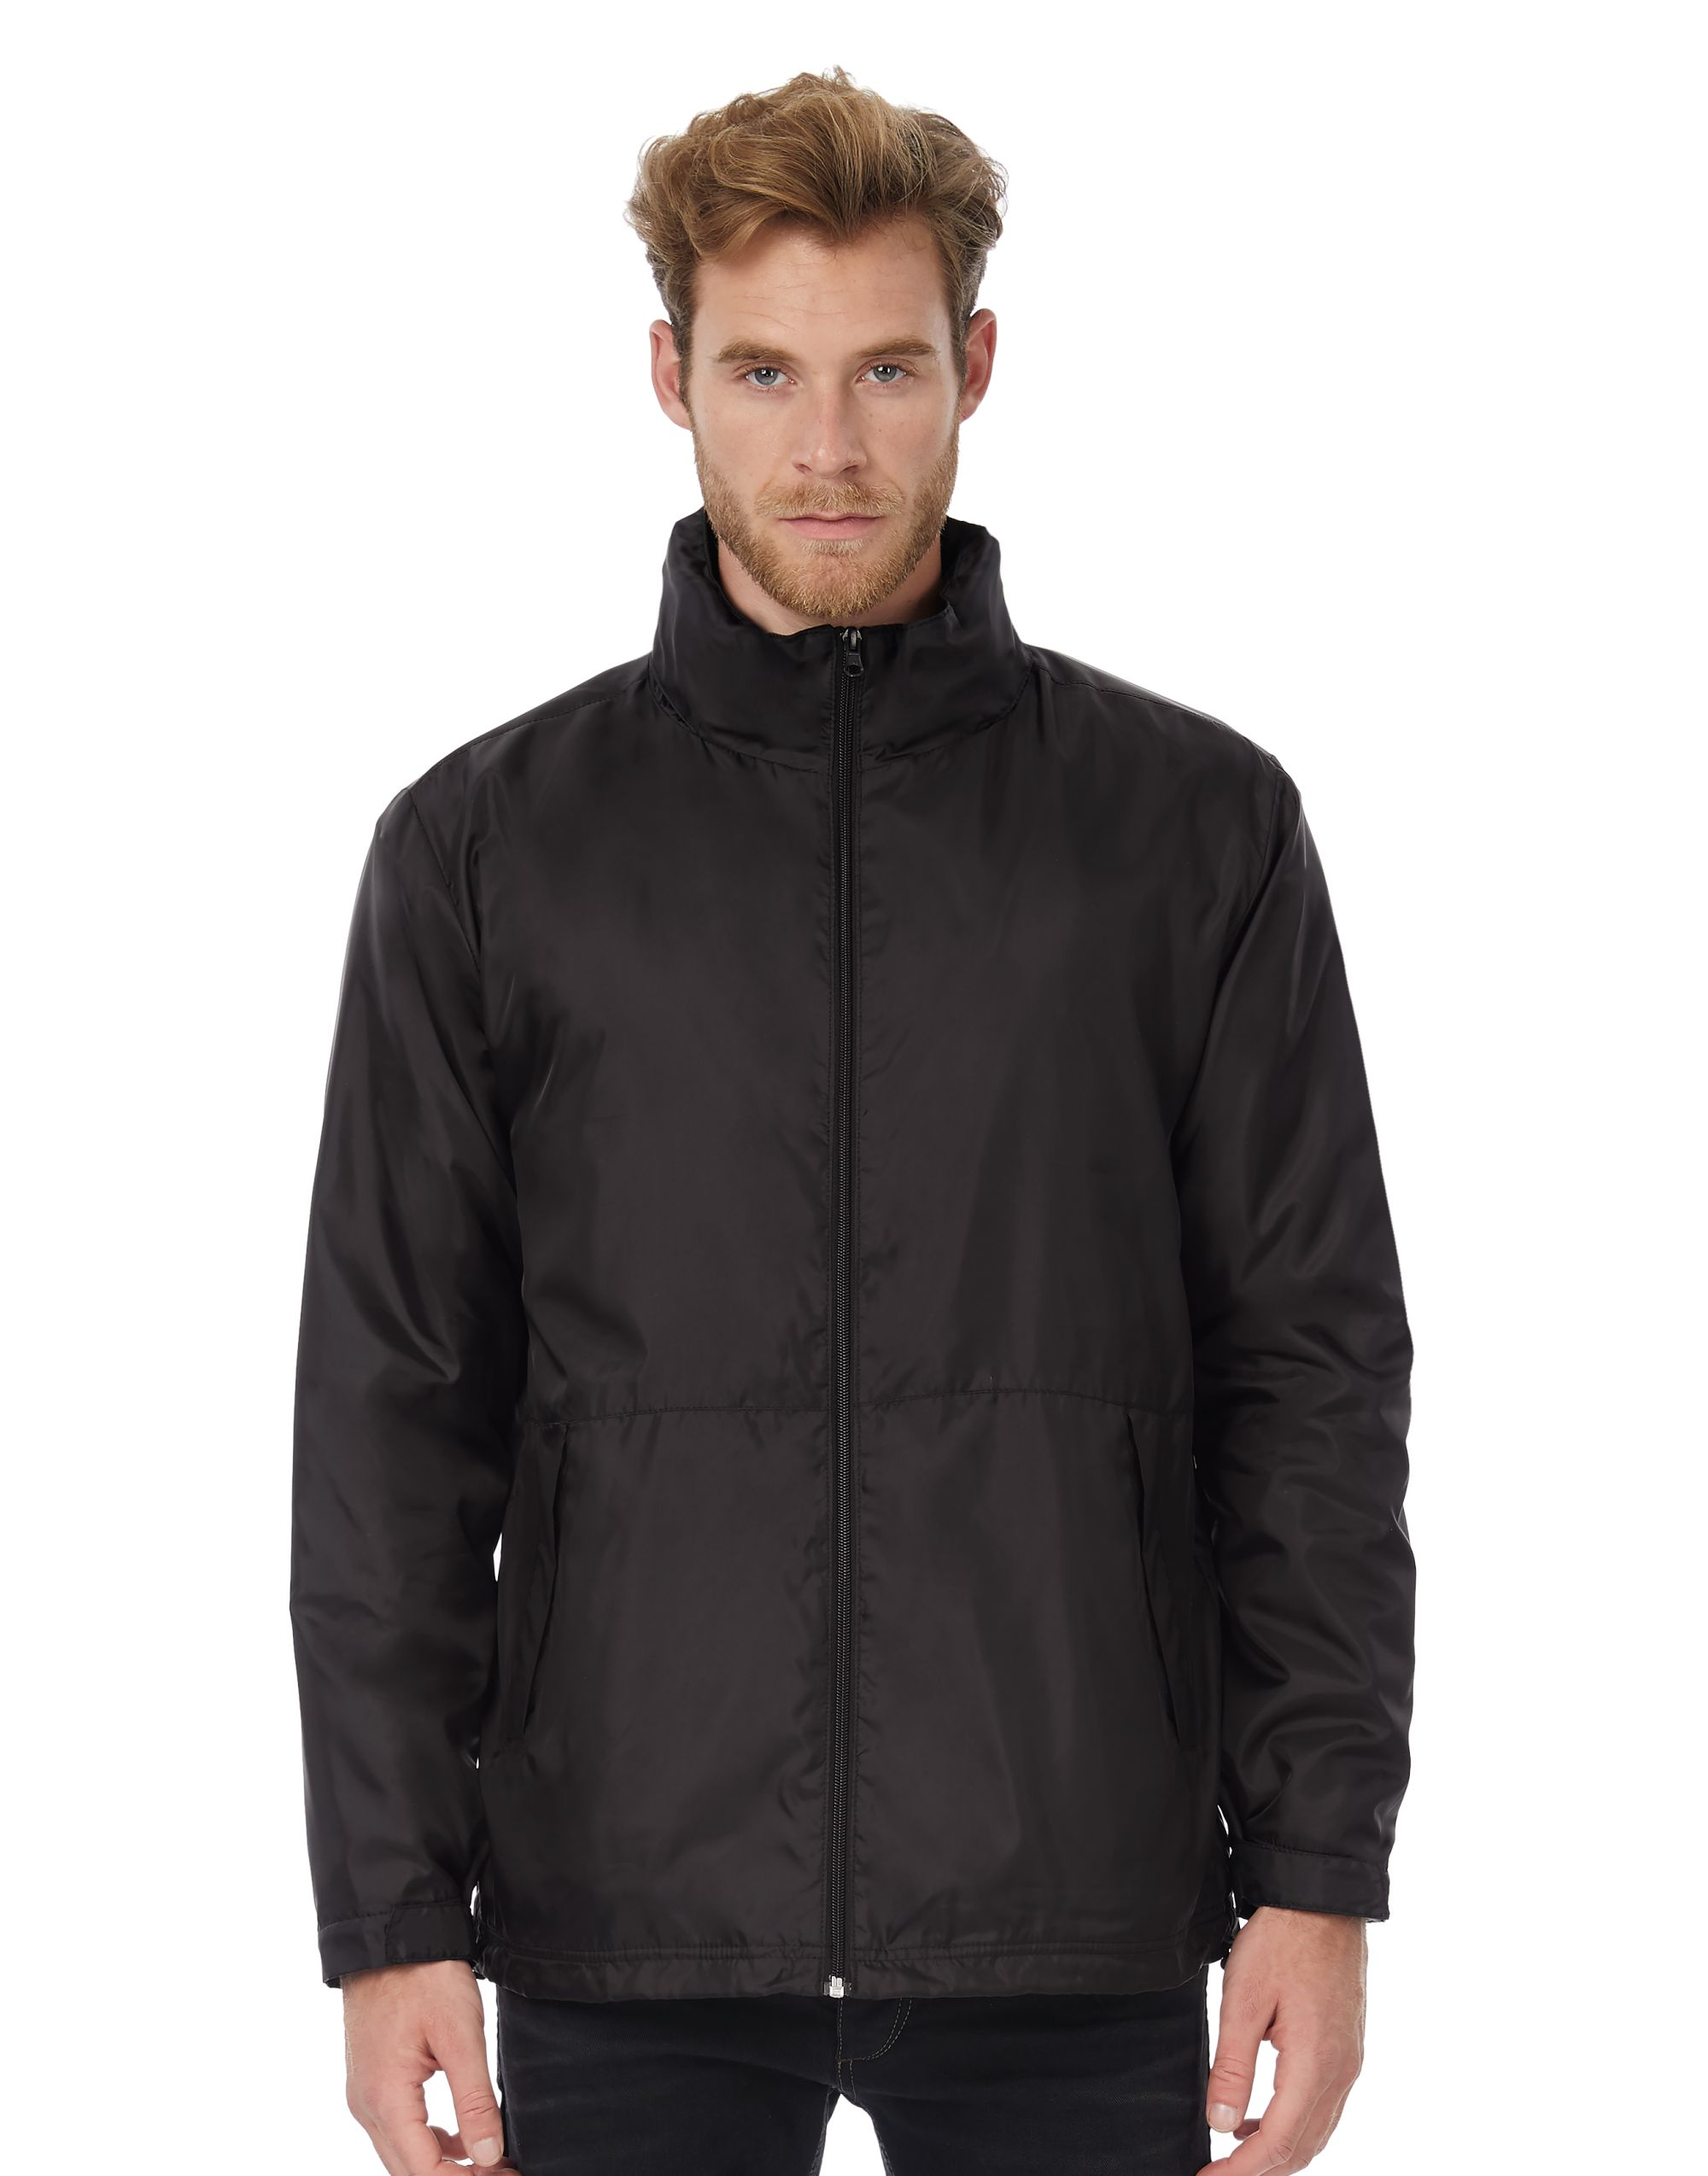 B&C Men's Multi-Active Jacket